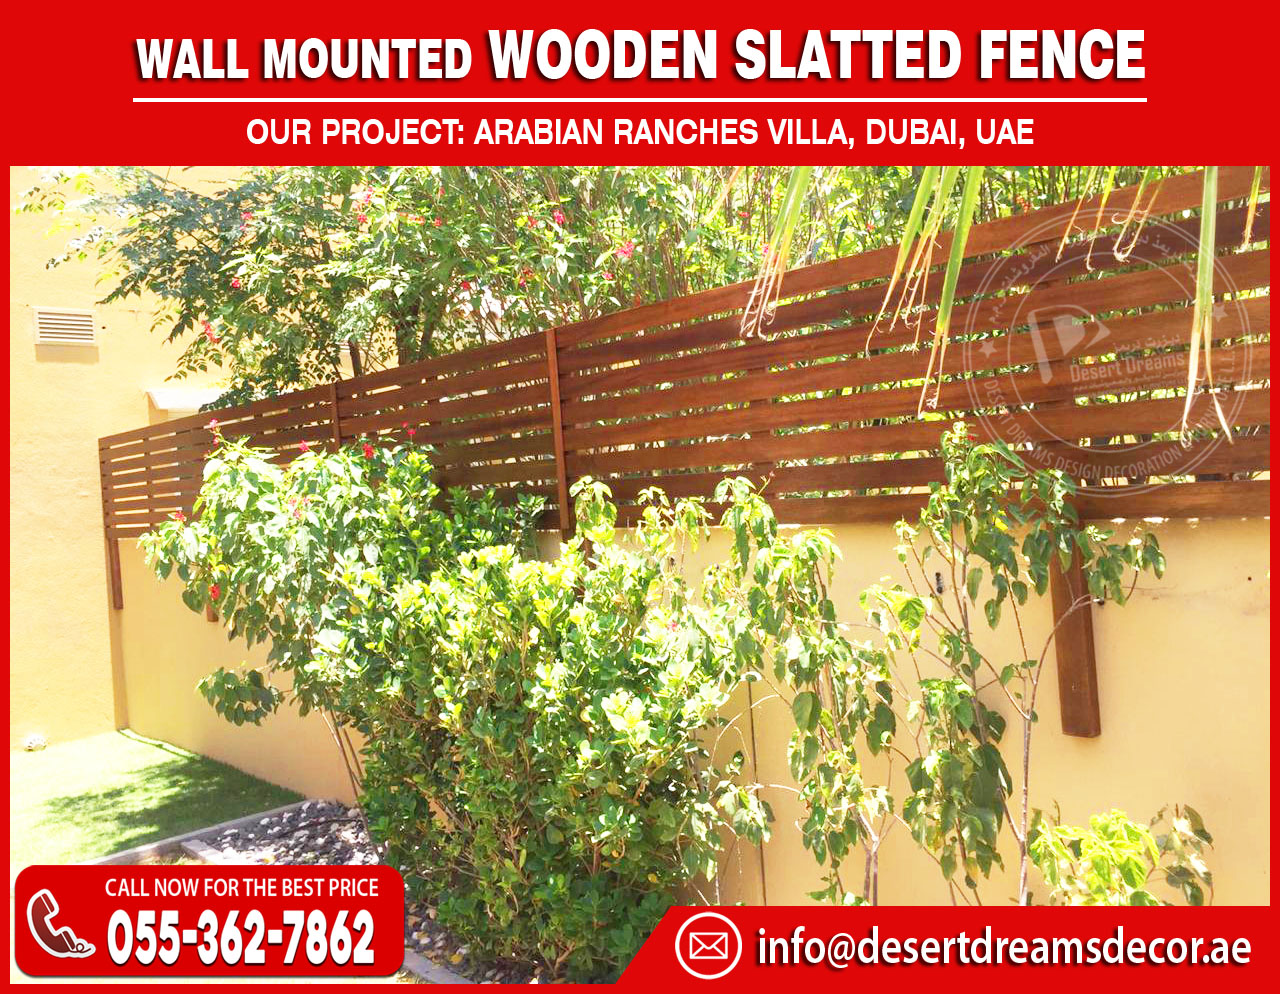 Wall Mounted Wooden Slatted Fences in UAE.jpg